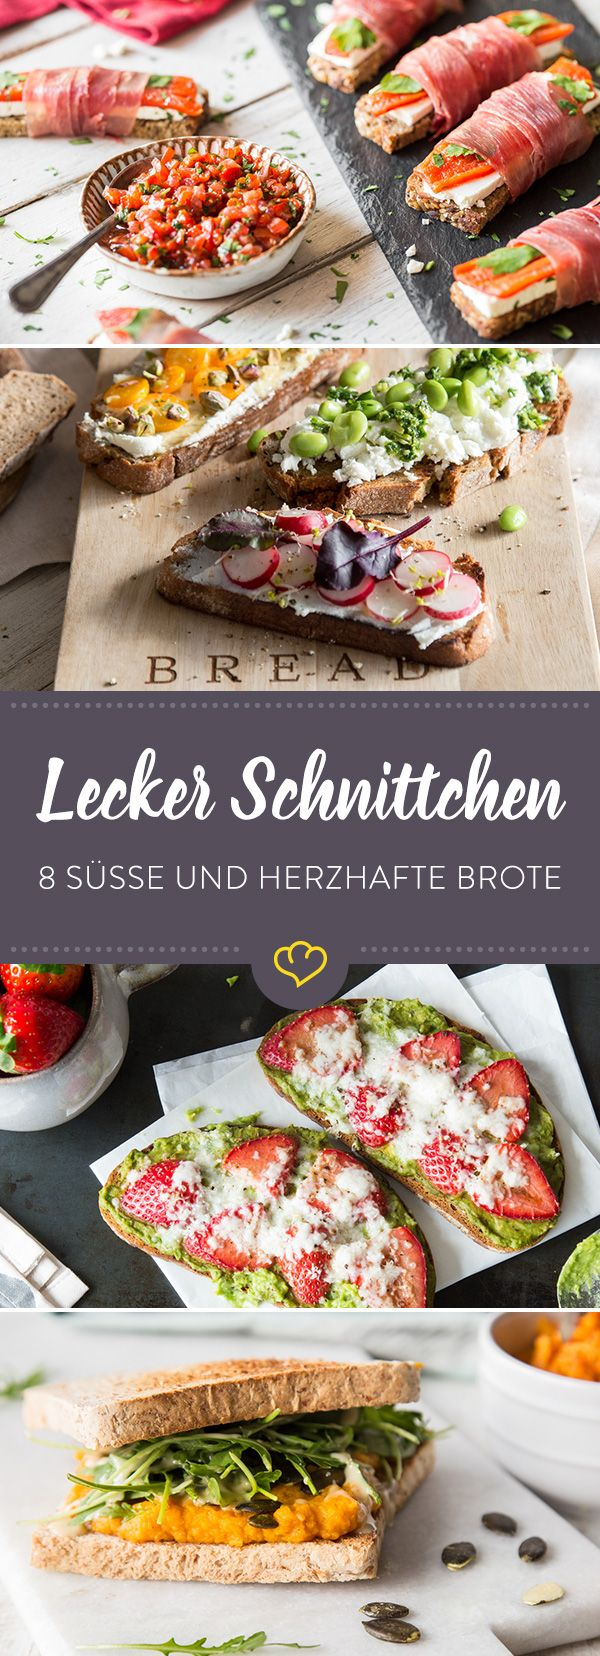 Brotaufstrich und wilde Toppings